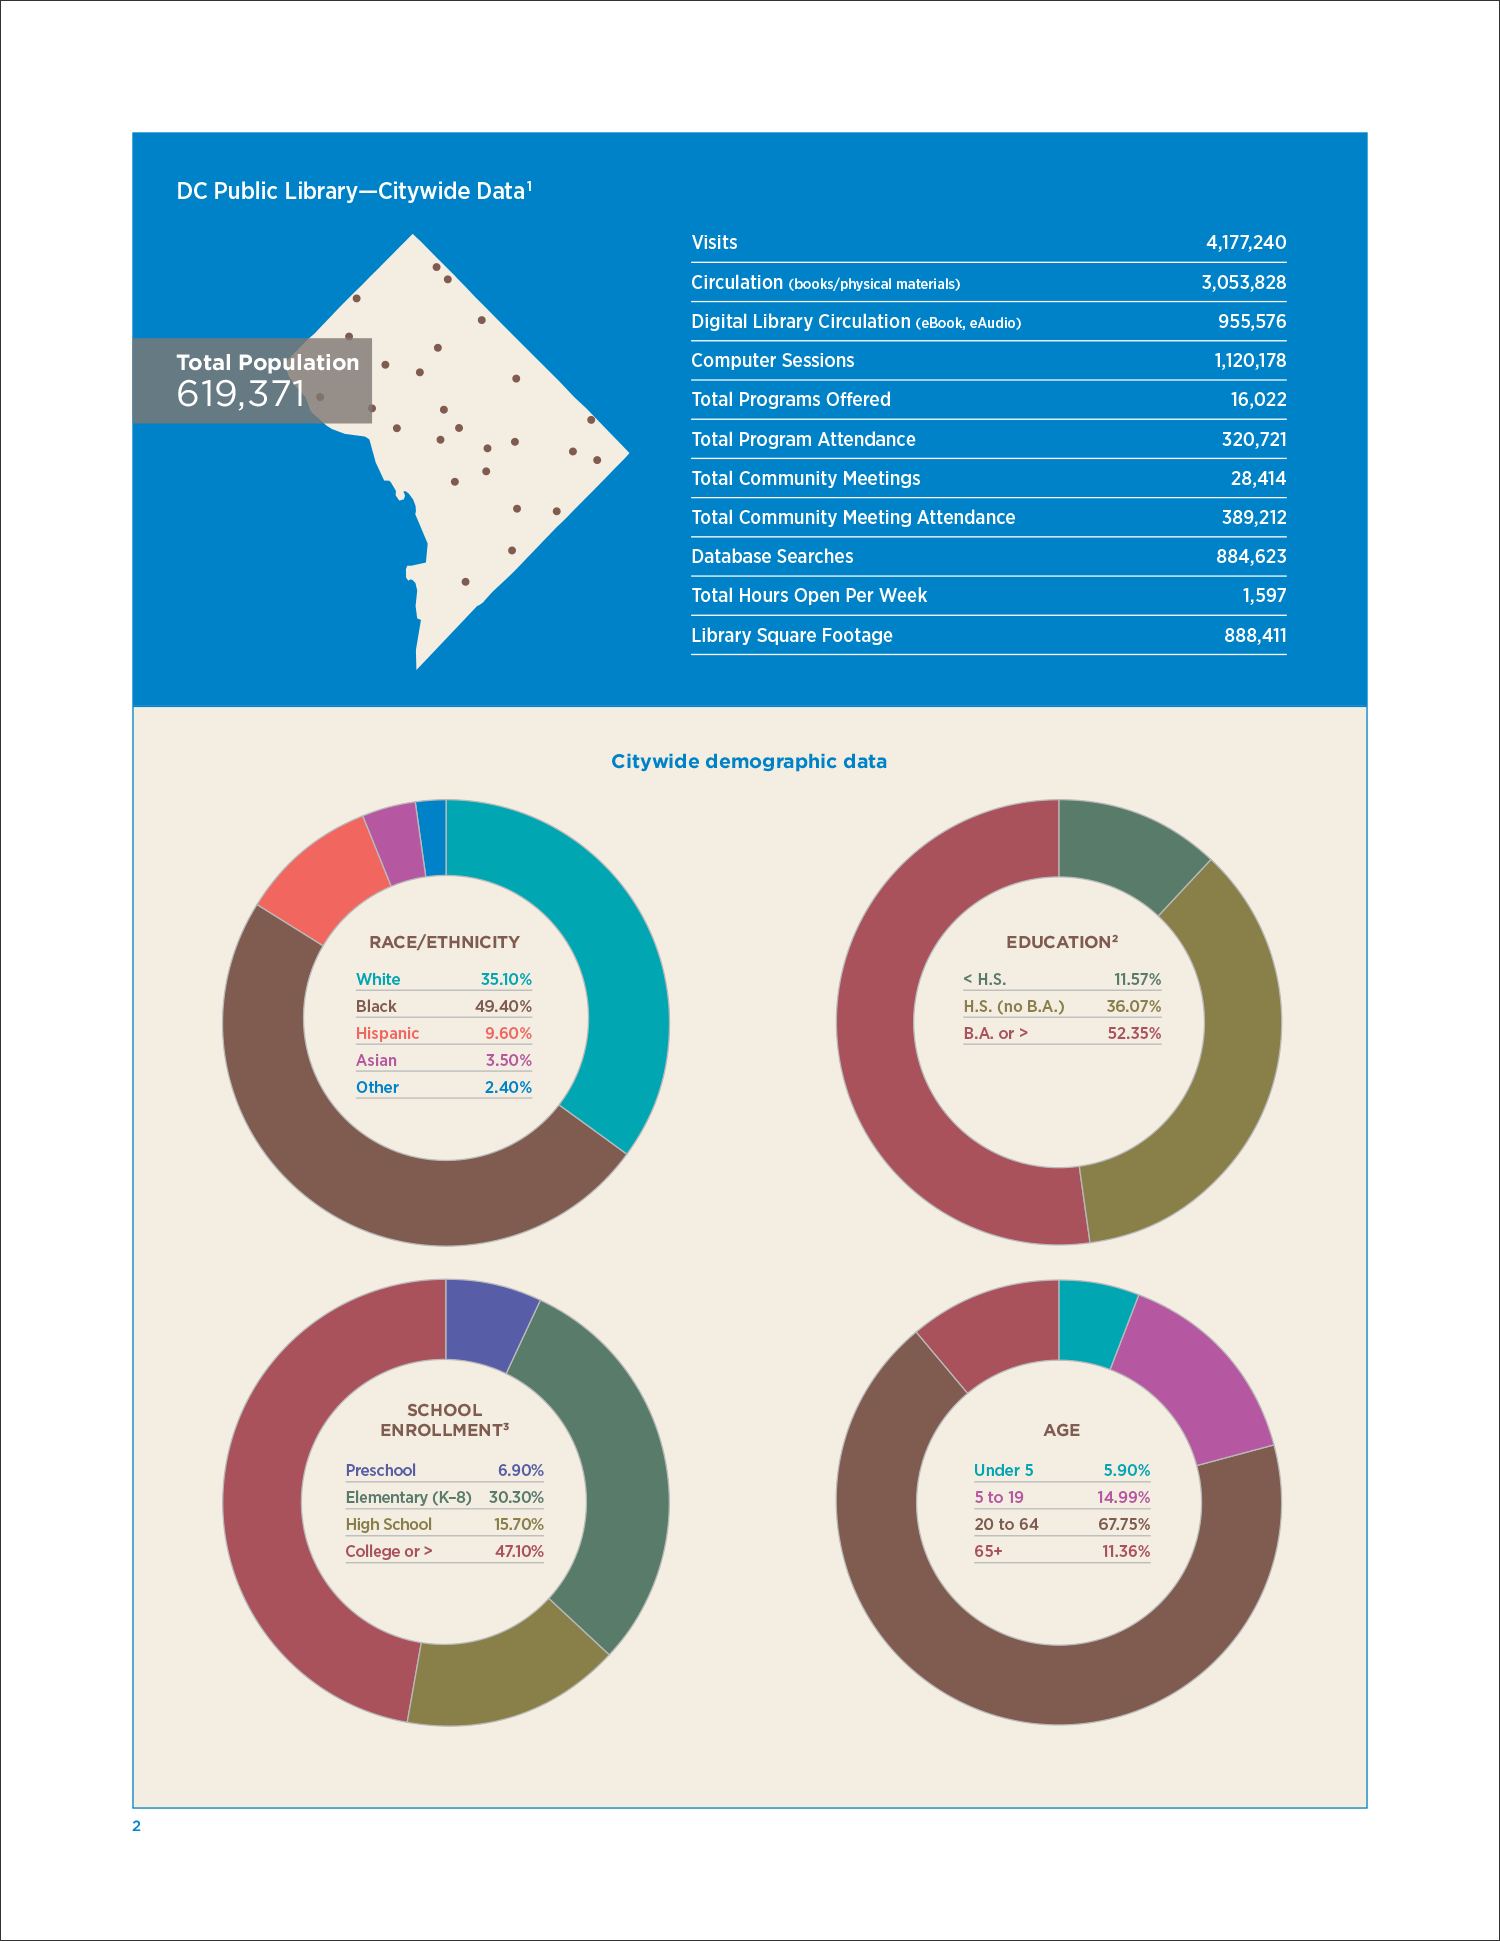 dcpl_libdata_at-a-glance_4.png